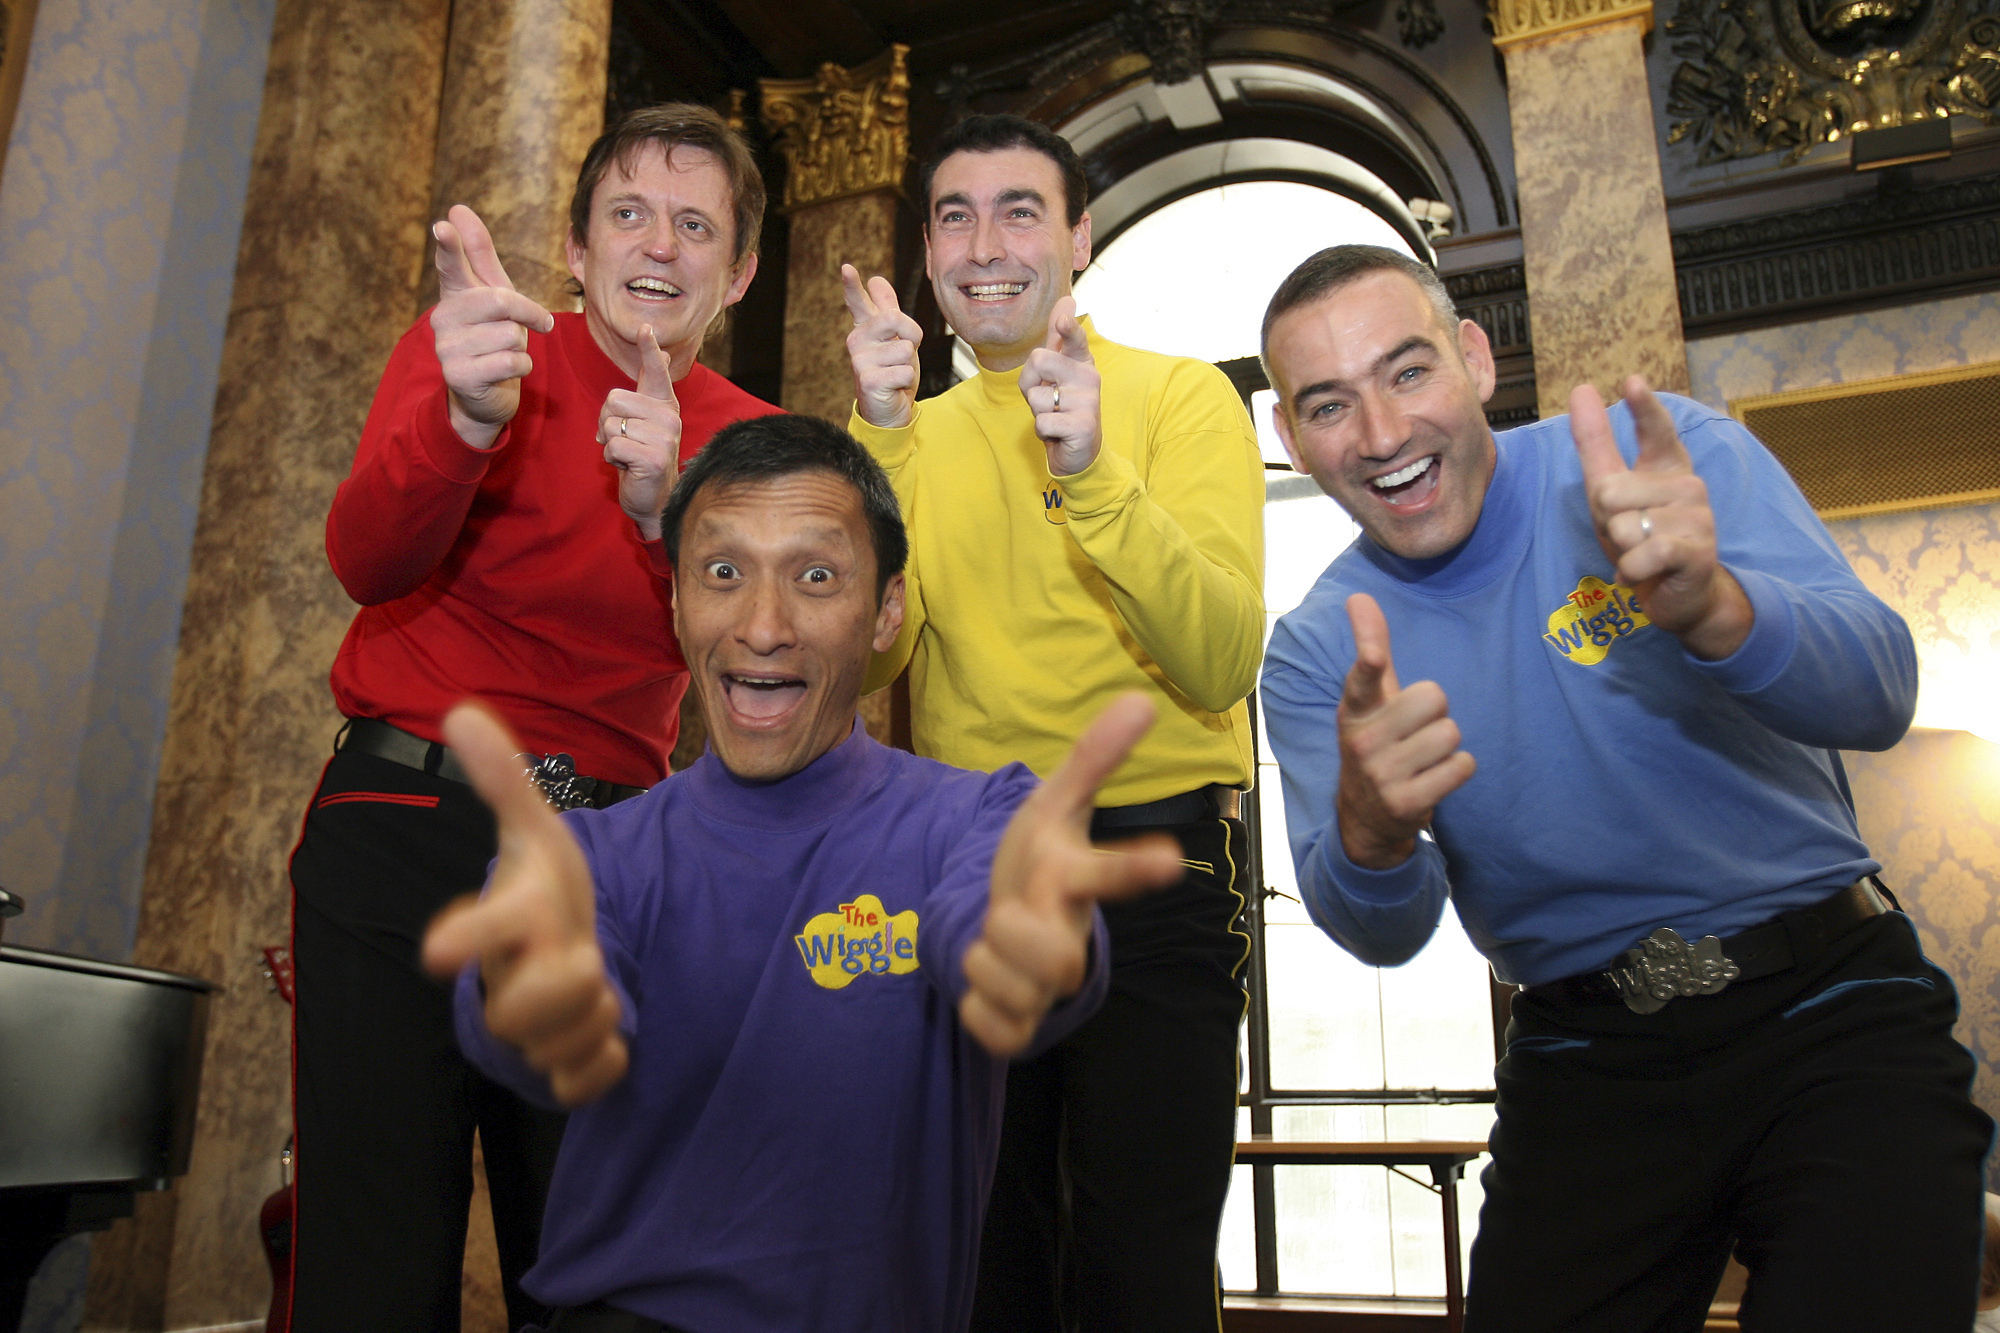 Original Member of The Wiggles Recovering in Hospital